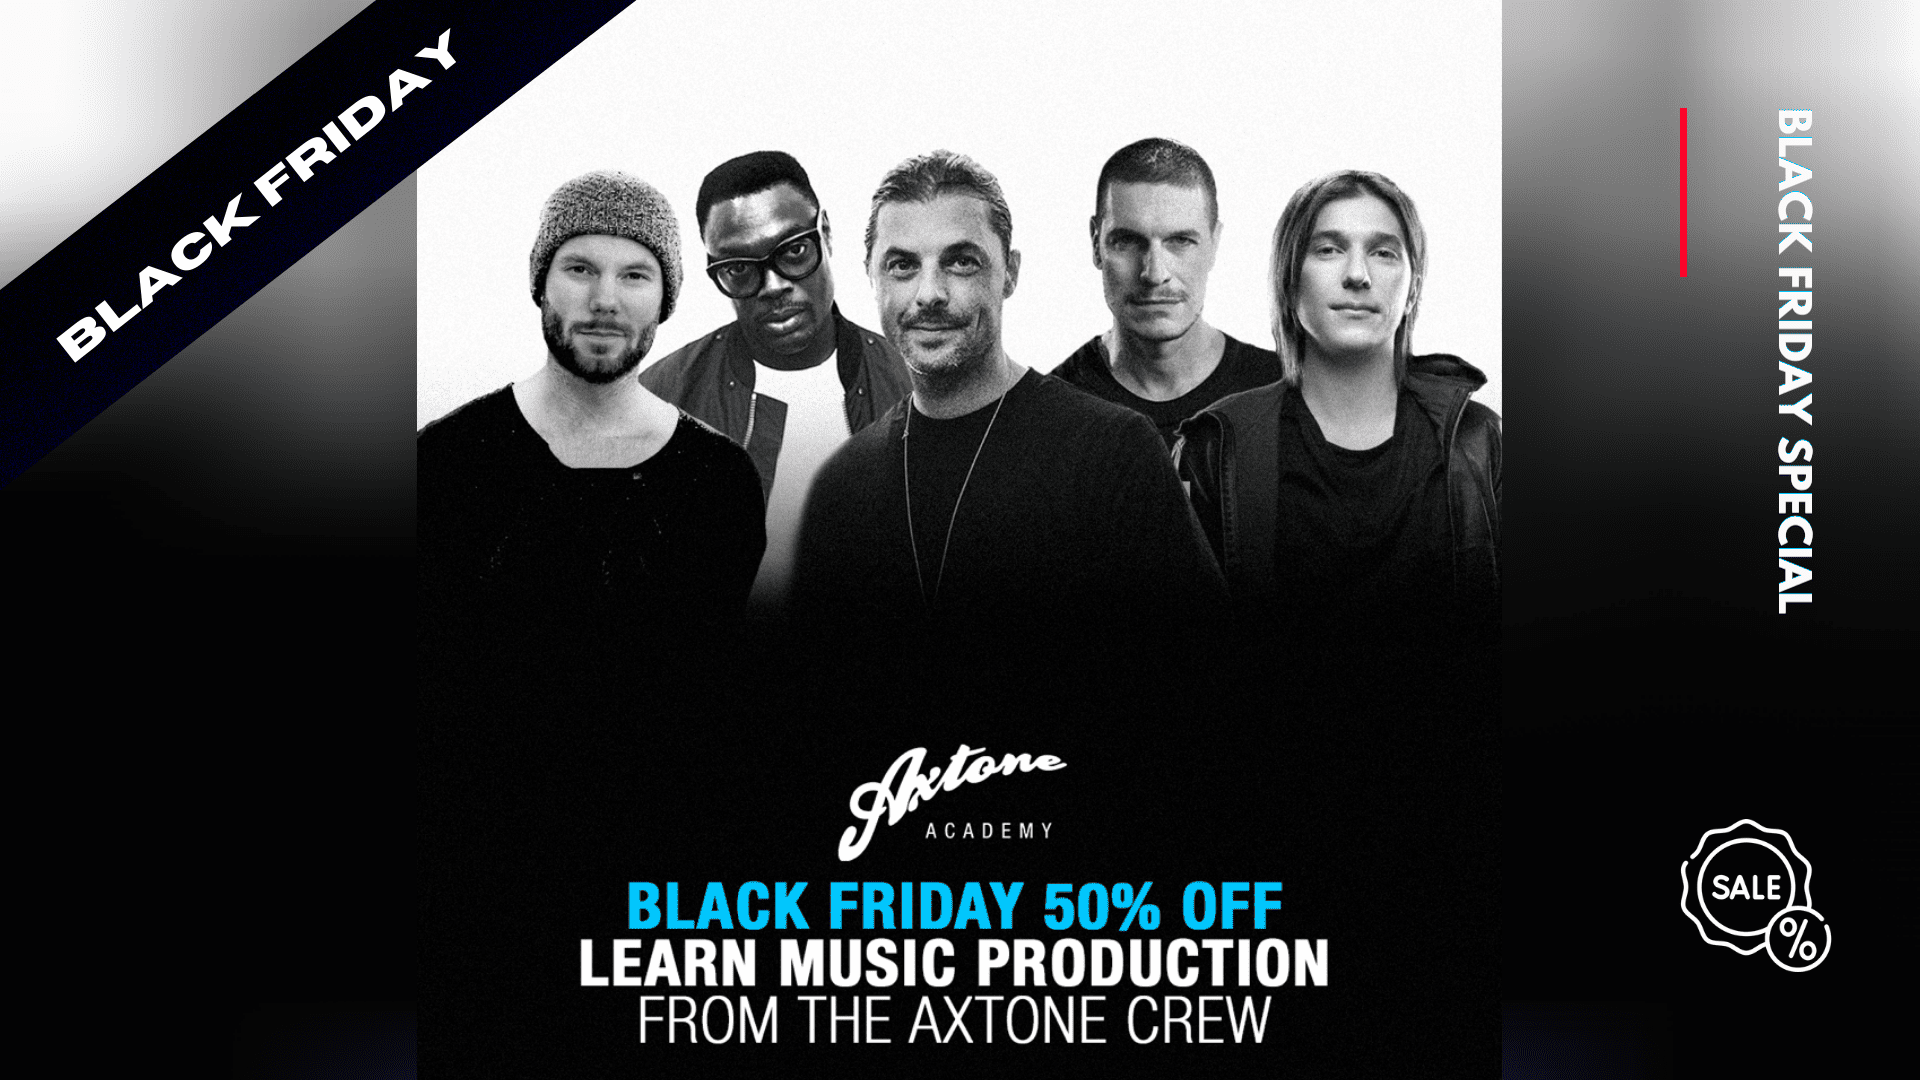 black friday axtone academy